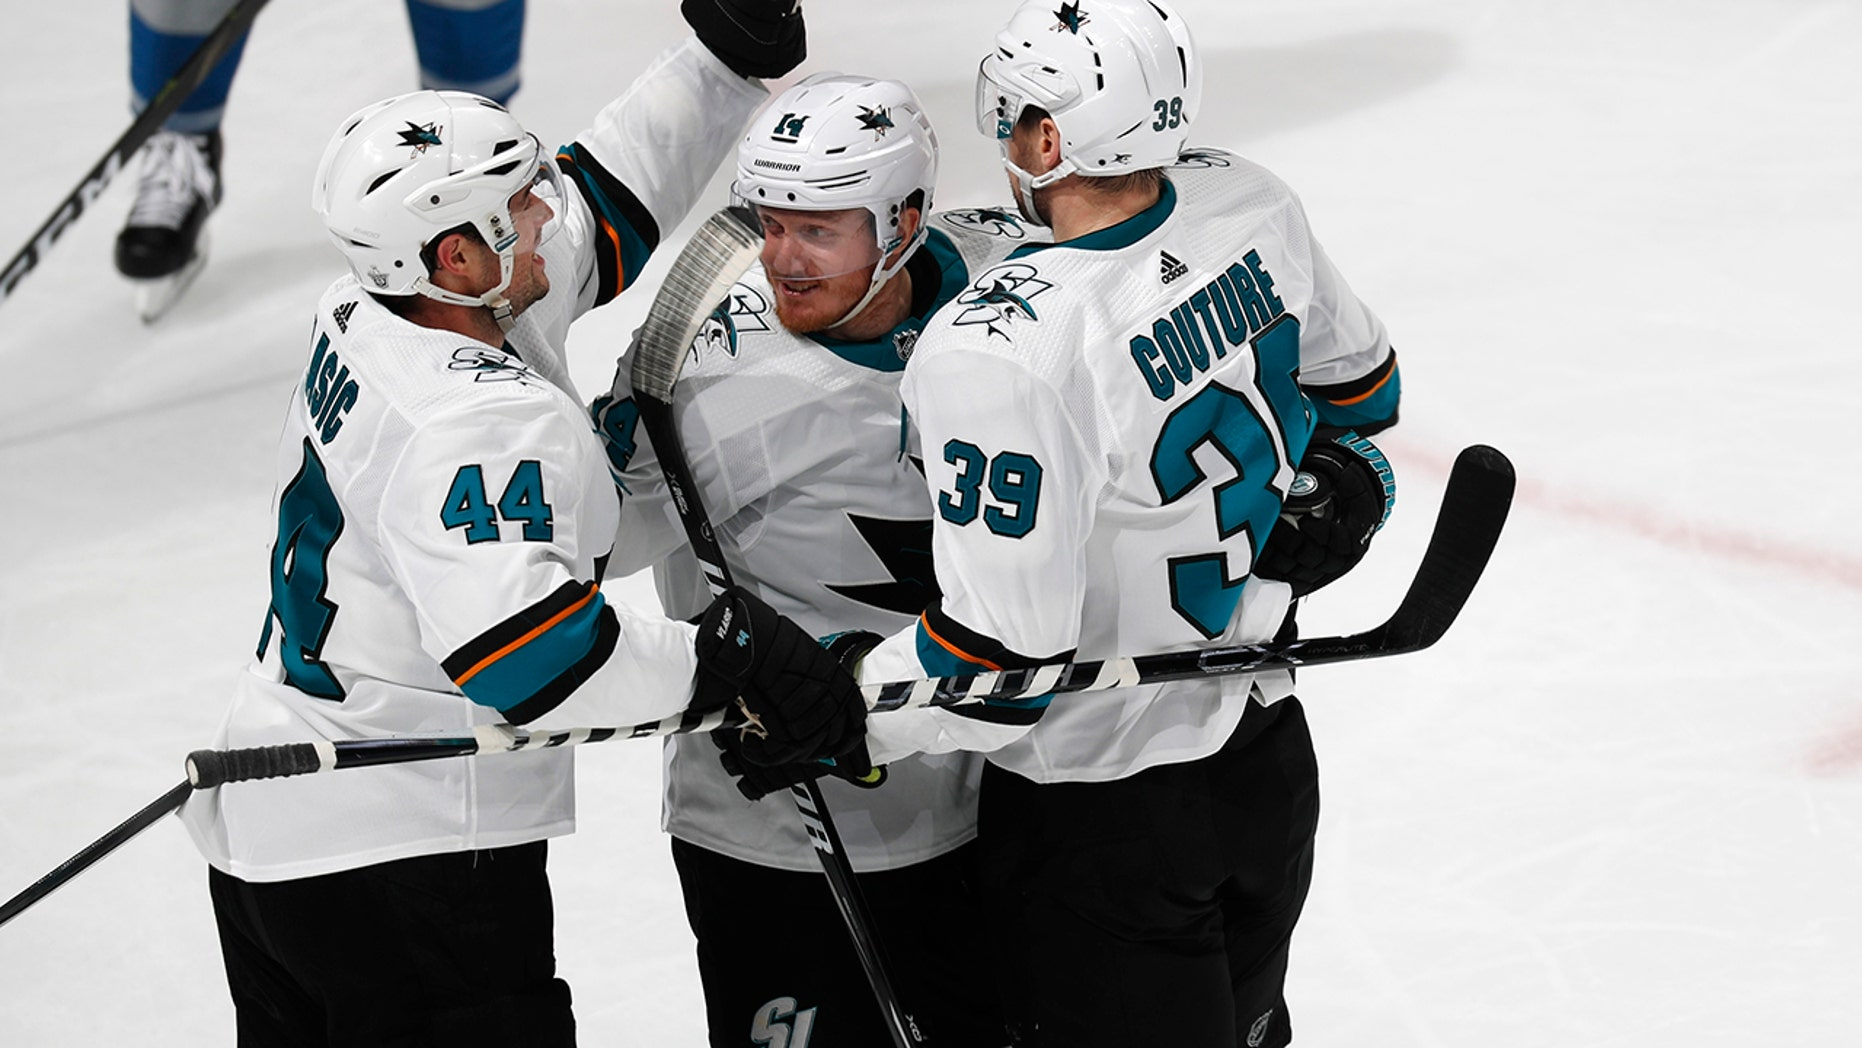 San Jose Sharks defenseman Marc-Edouard Vlasic, left, celebrates with center Gustav Nyquist and center Logan Couture, right, after his goal against the Colorado Avalanche during the third period of Game 3 of an NHL hockey second-round playoff series Tuesday, April 30, 2019, in Denver. The Sharks won 4-2. (AP Photo/David Zalubowski)